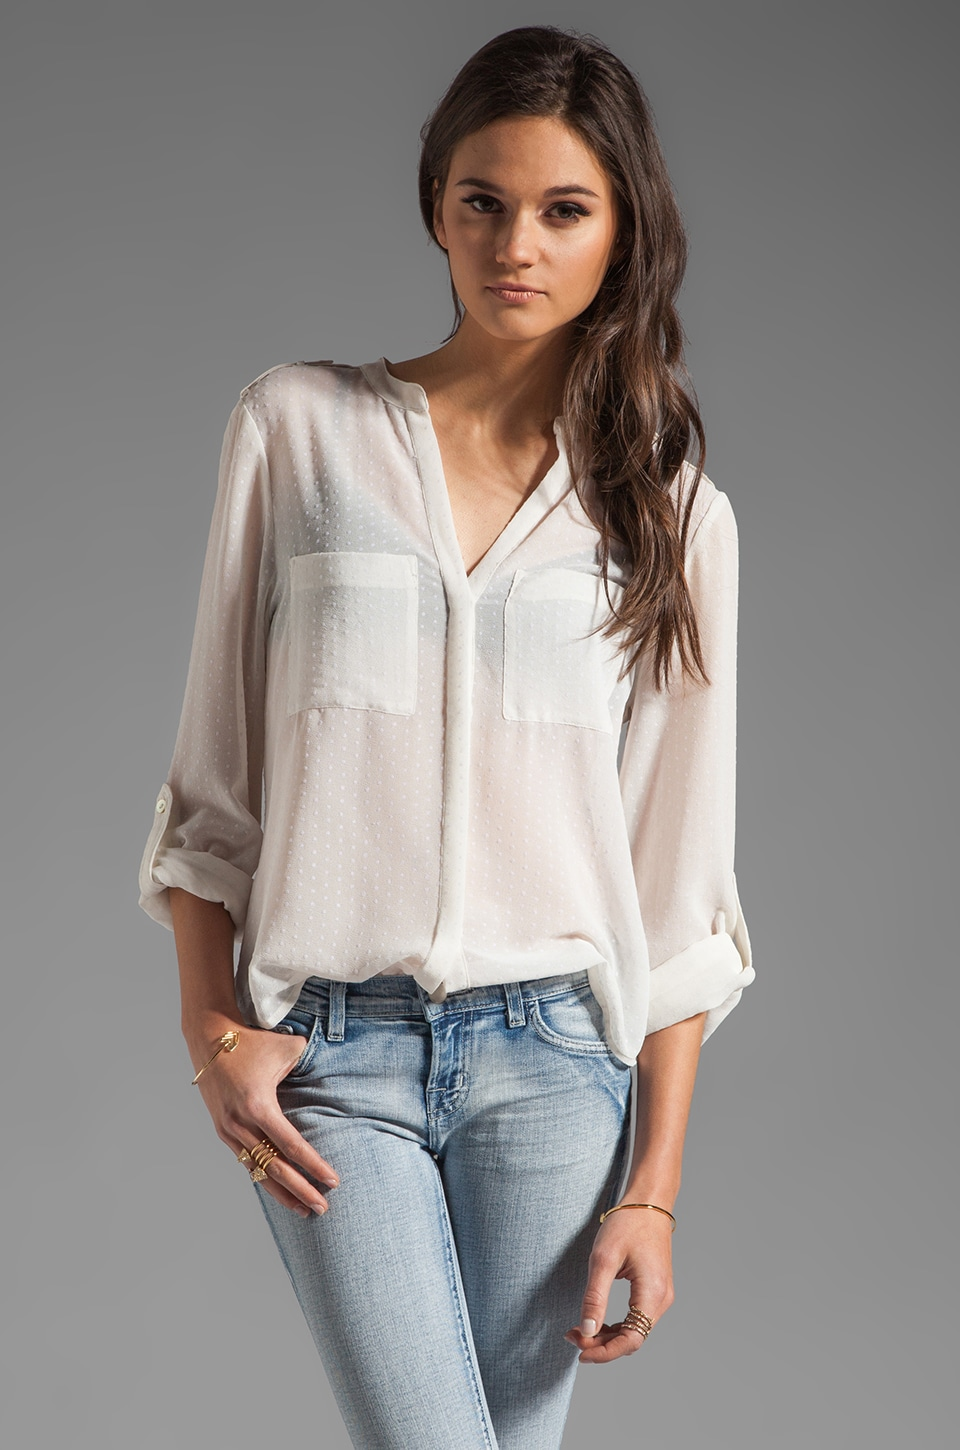 Sanctuary Delicate Cafe Blouse in Ivory